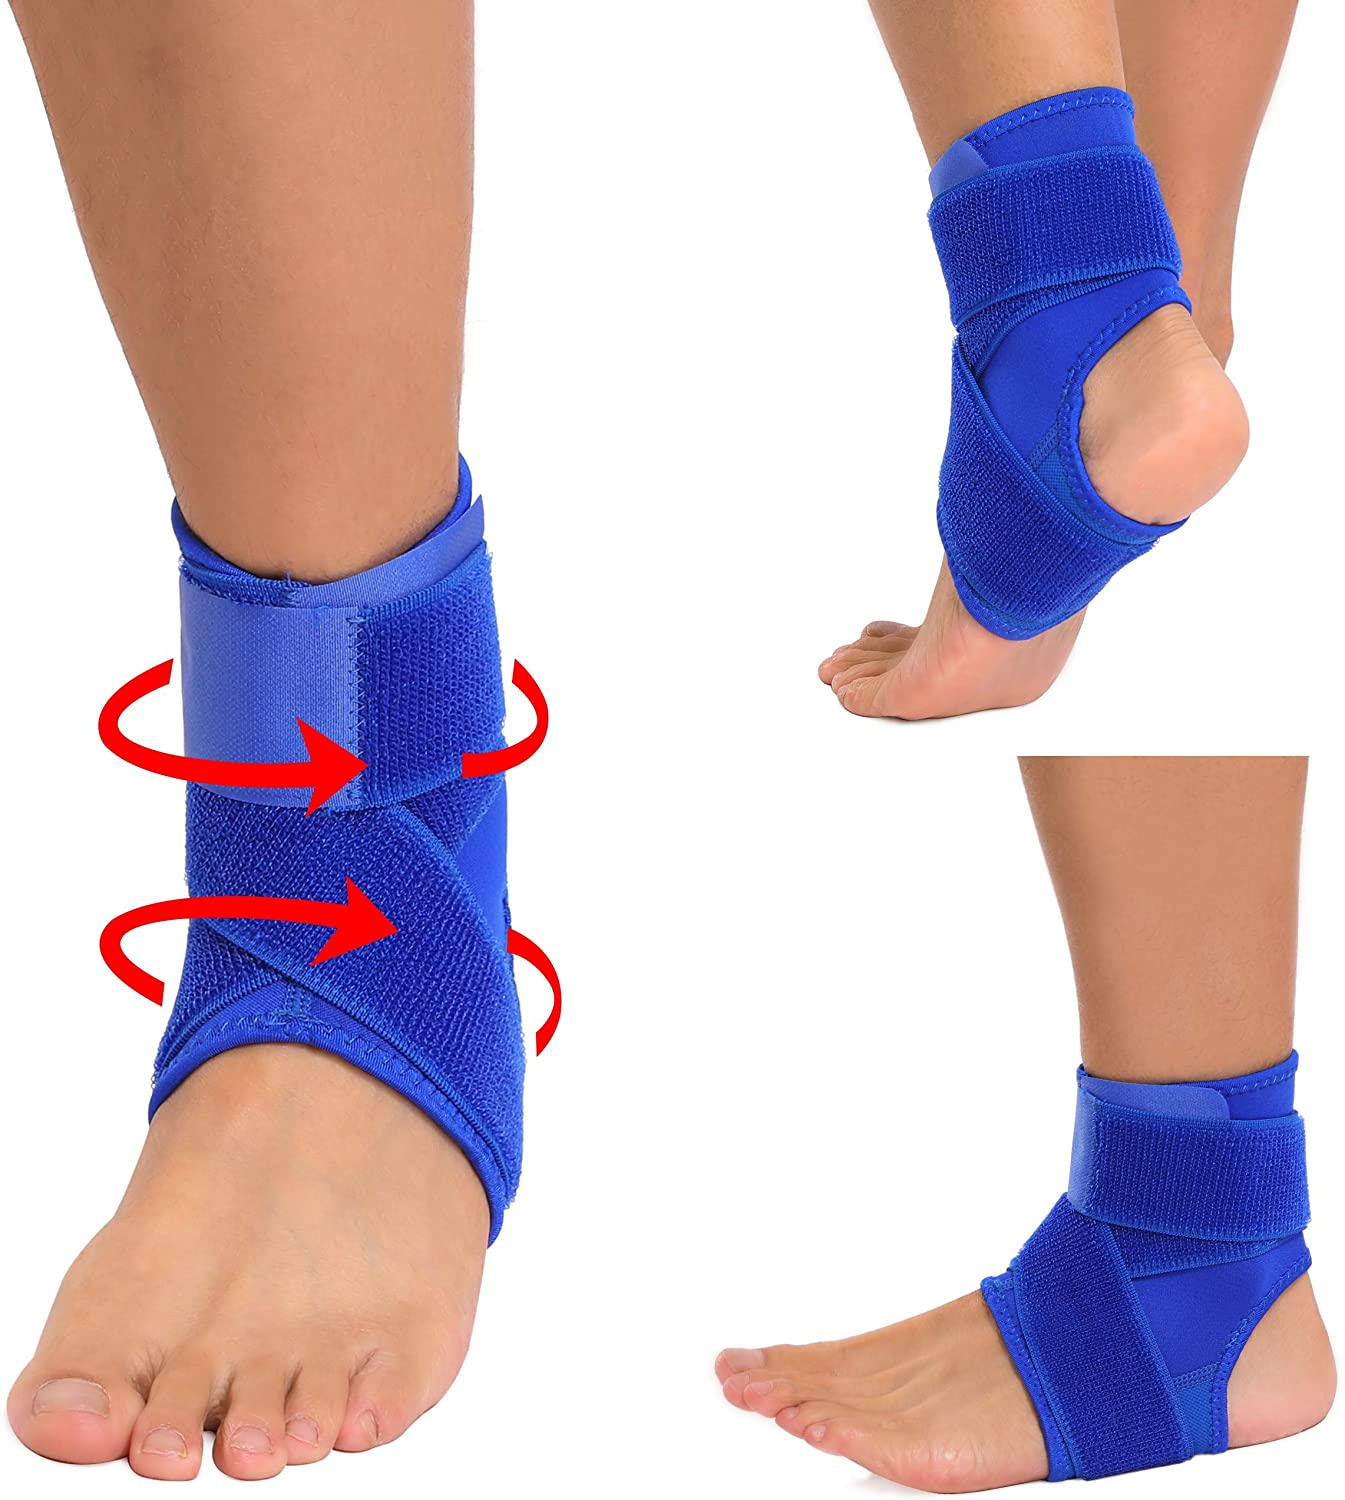 Hopgo Ankle Brace for Women Men, Foot Sleeve Ankle Support Adjustable Compression Sports Wraps Guard for Running Basketball Volleyball Soccer Royal Blue Size L